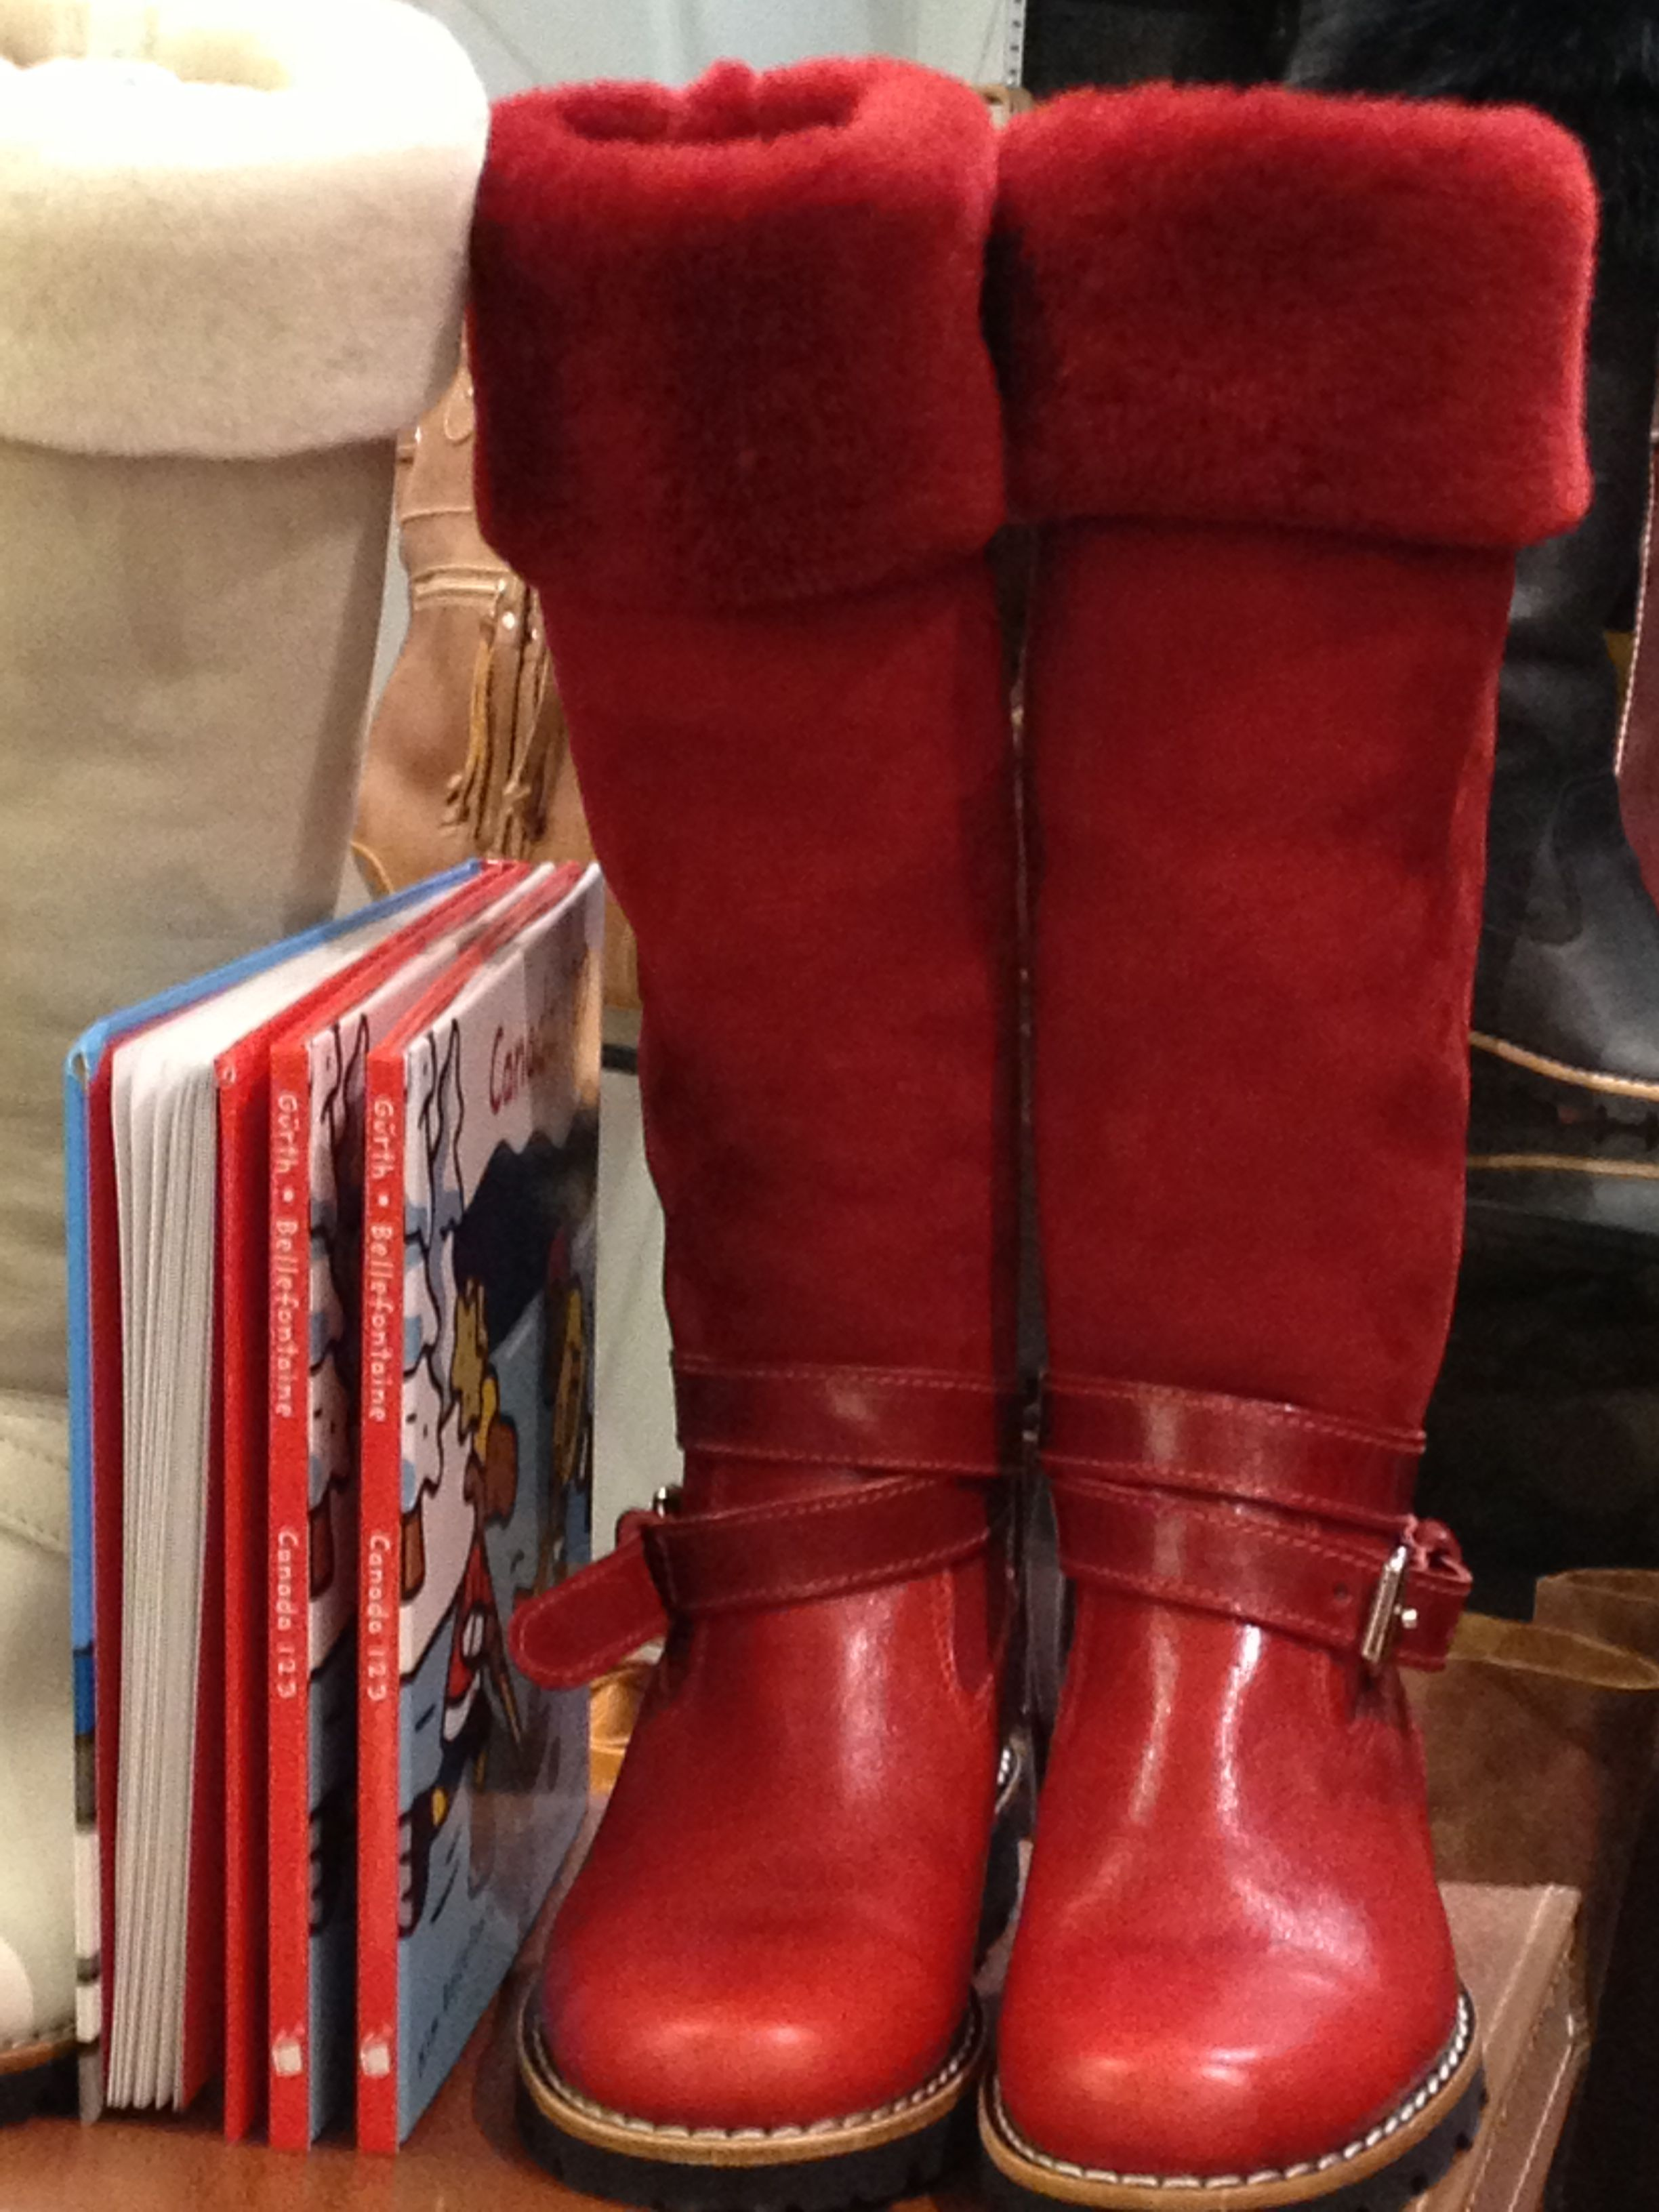 9a865a30536d Roots Canada - boots captured in the store. Covet